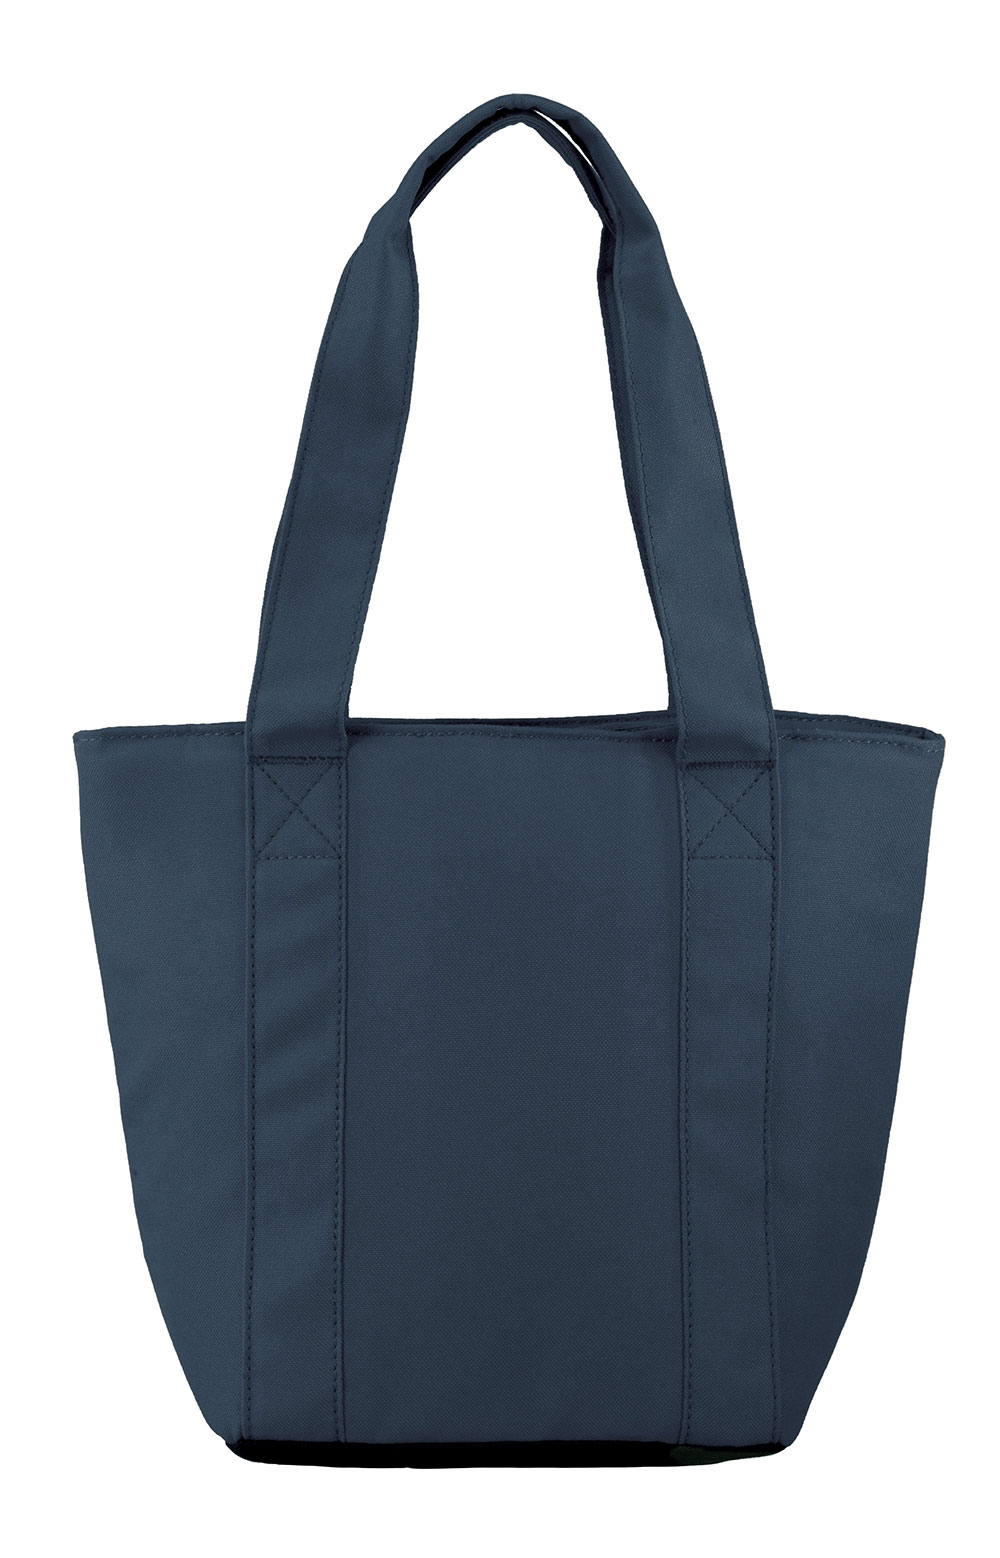 Lunch Tote Bag - Navy 2